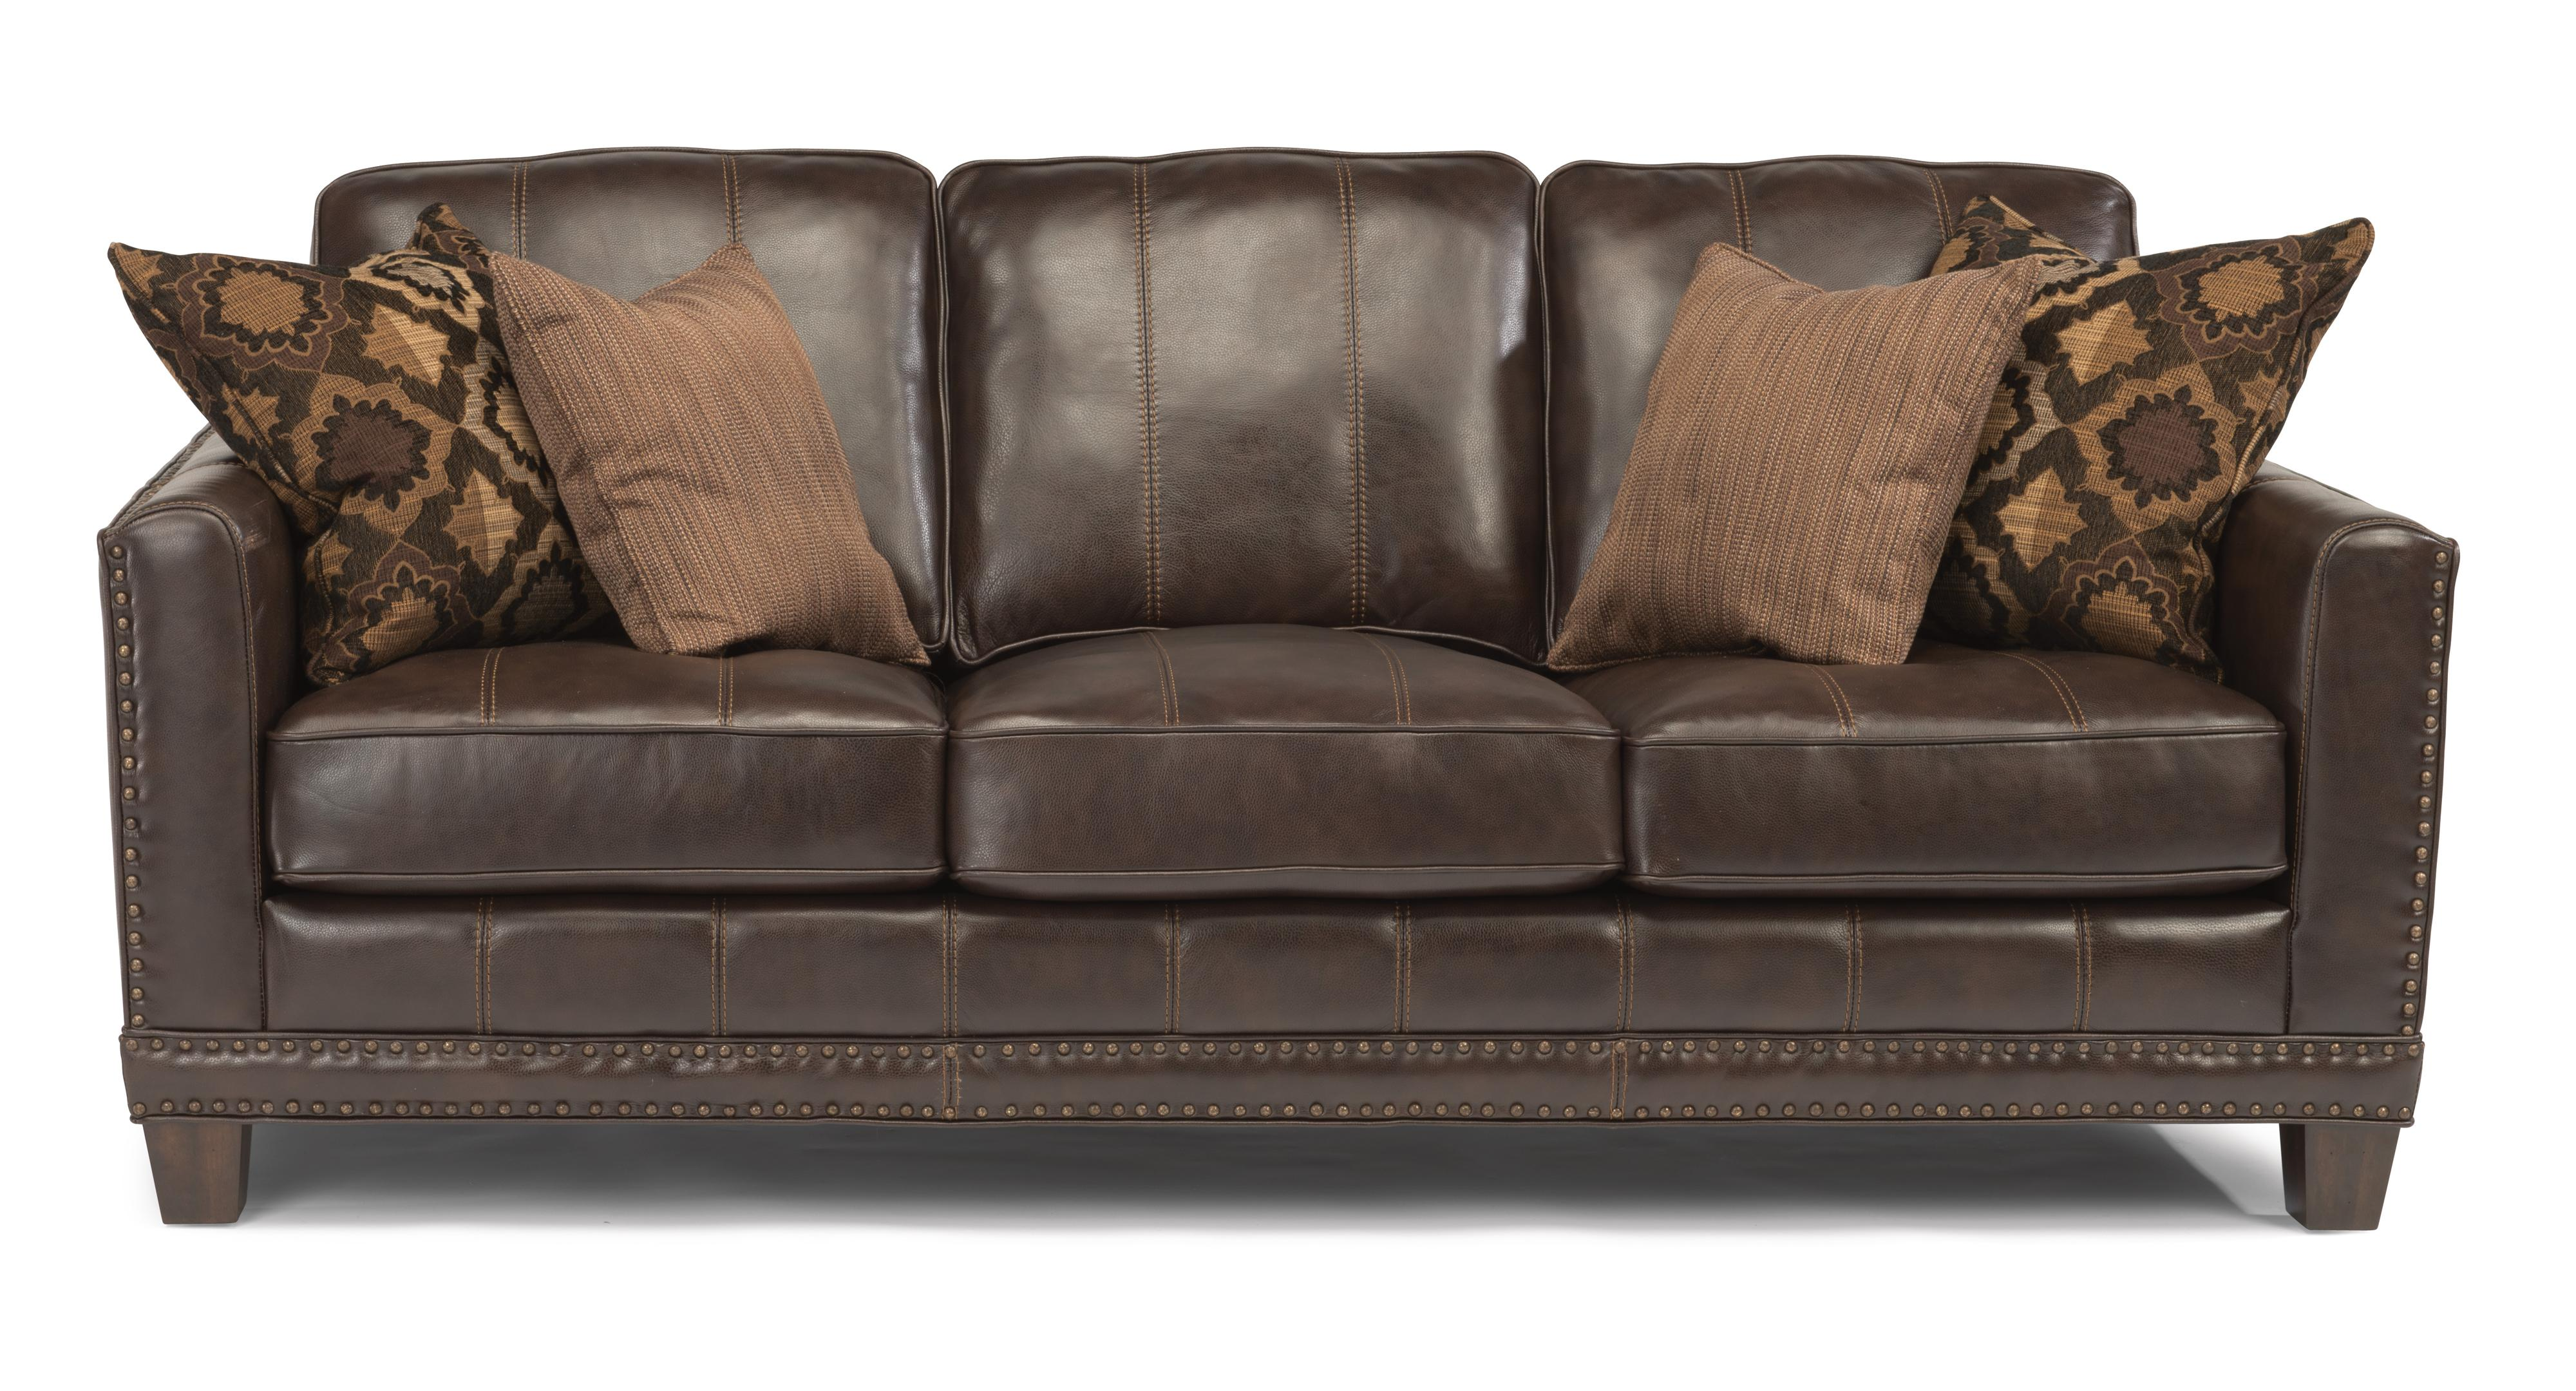 Latitudes - Port Royal Sofa by Flexsteel at Northeast Factory Direct